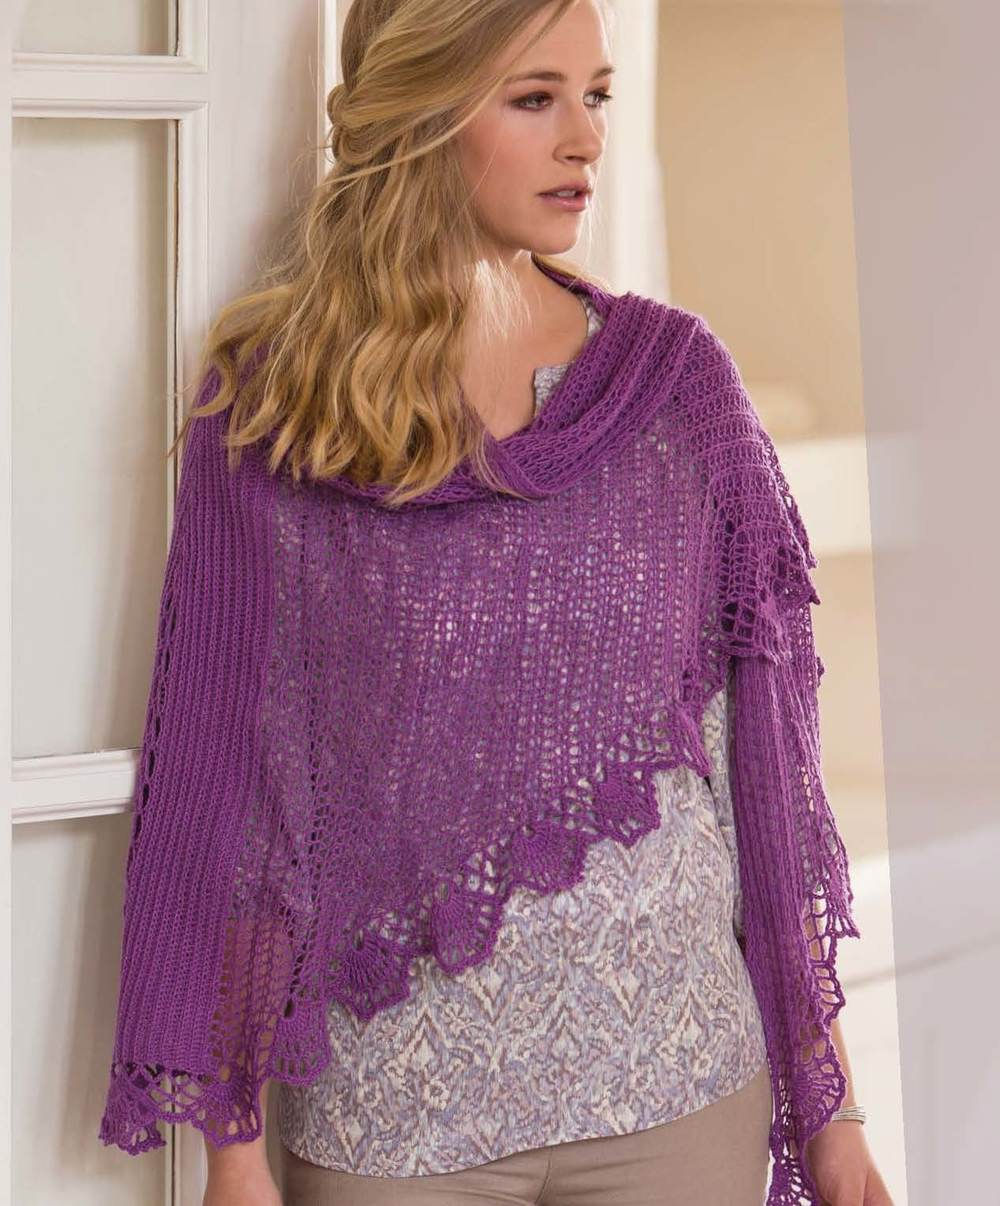 Crochet So Lovely -  Orchid Faroese Shawl beauty shot.jpg